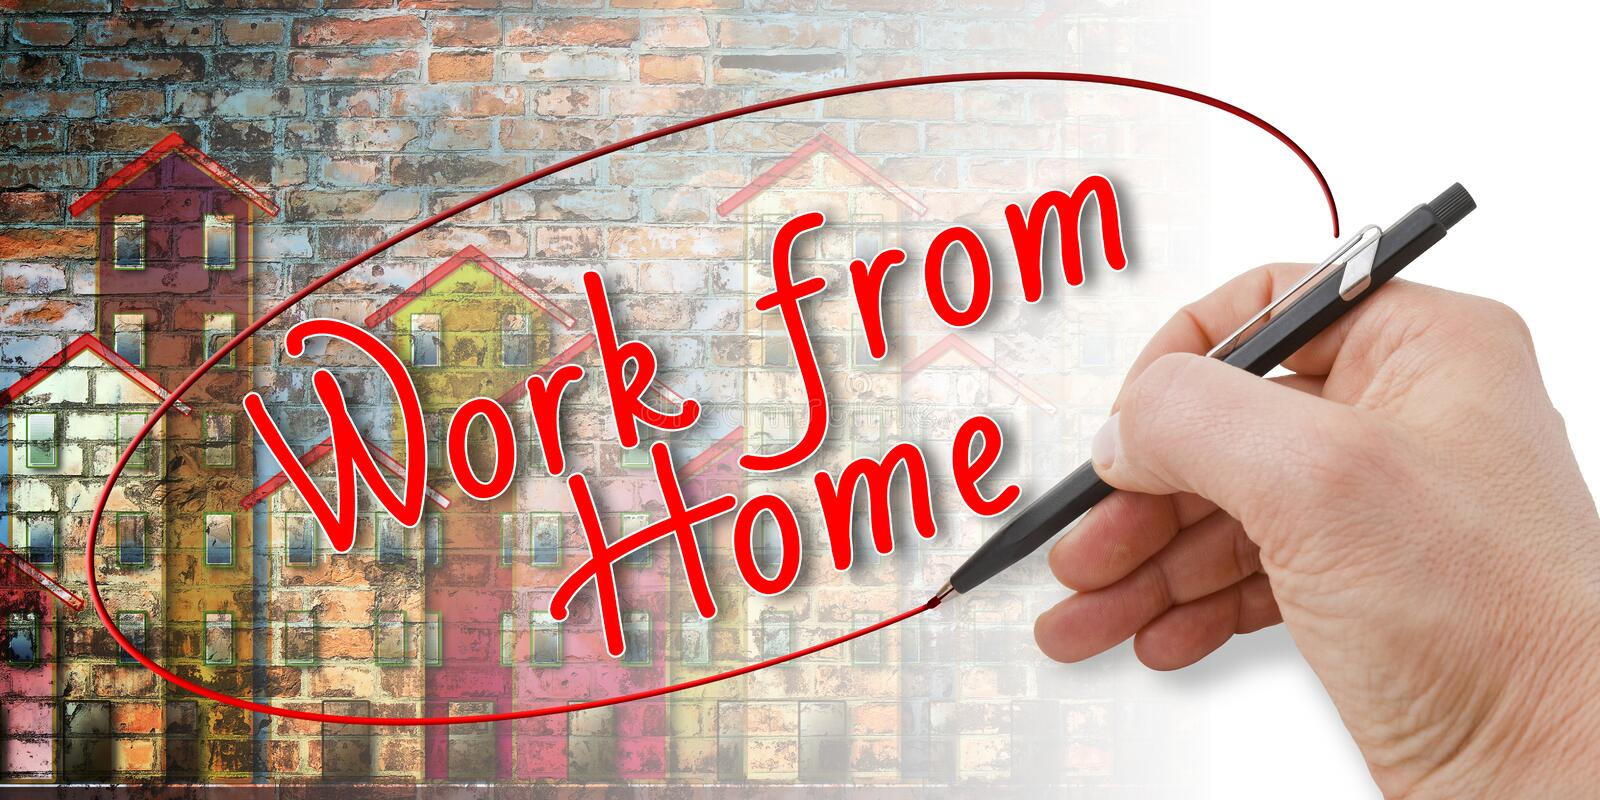 Hand writing `Work from home` stock photography